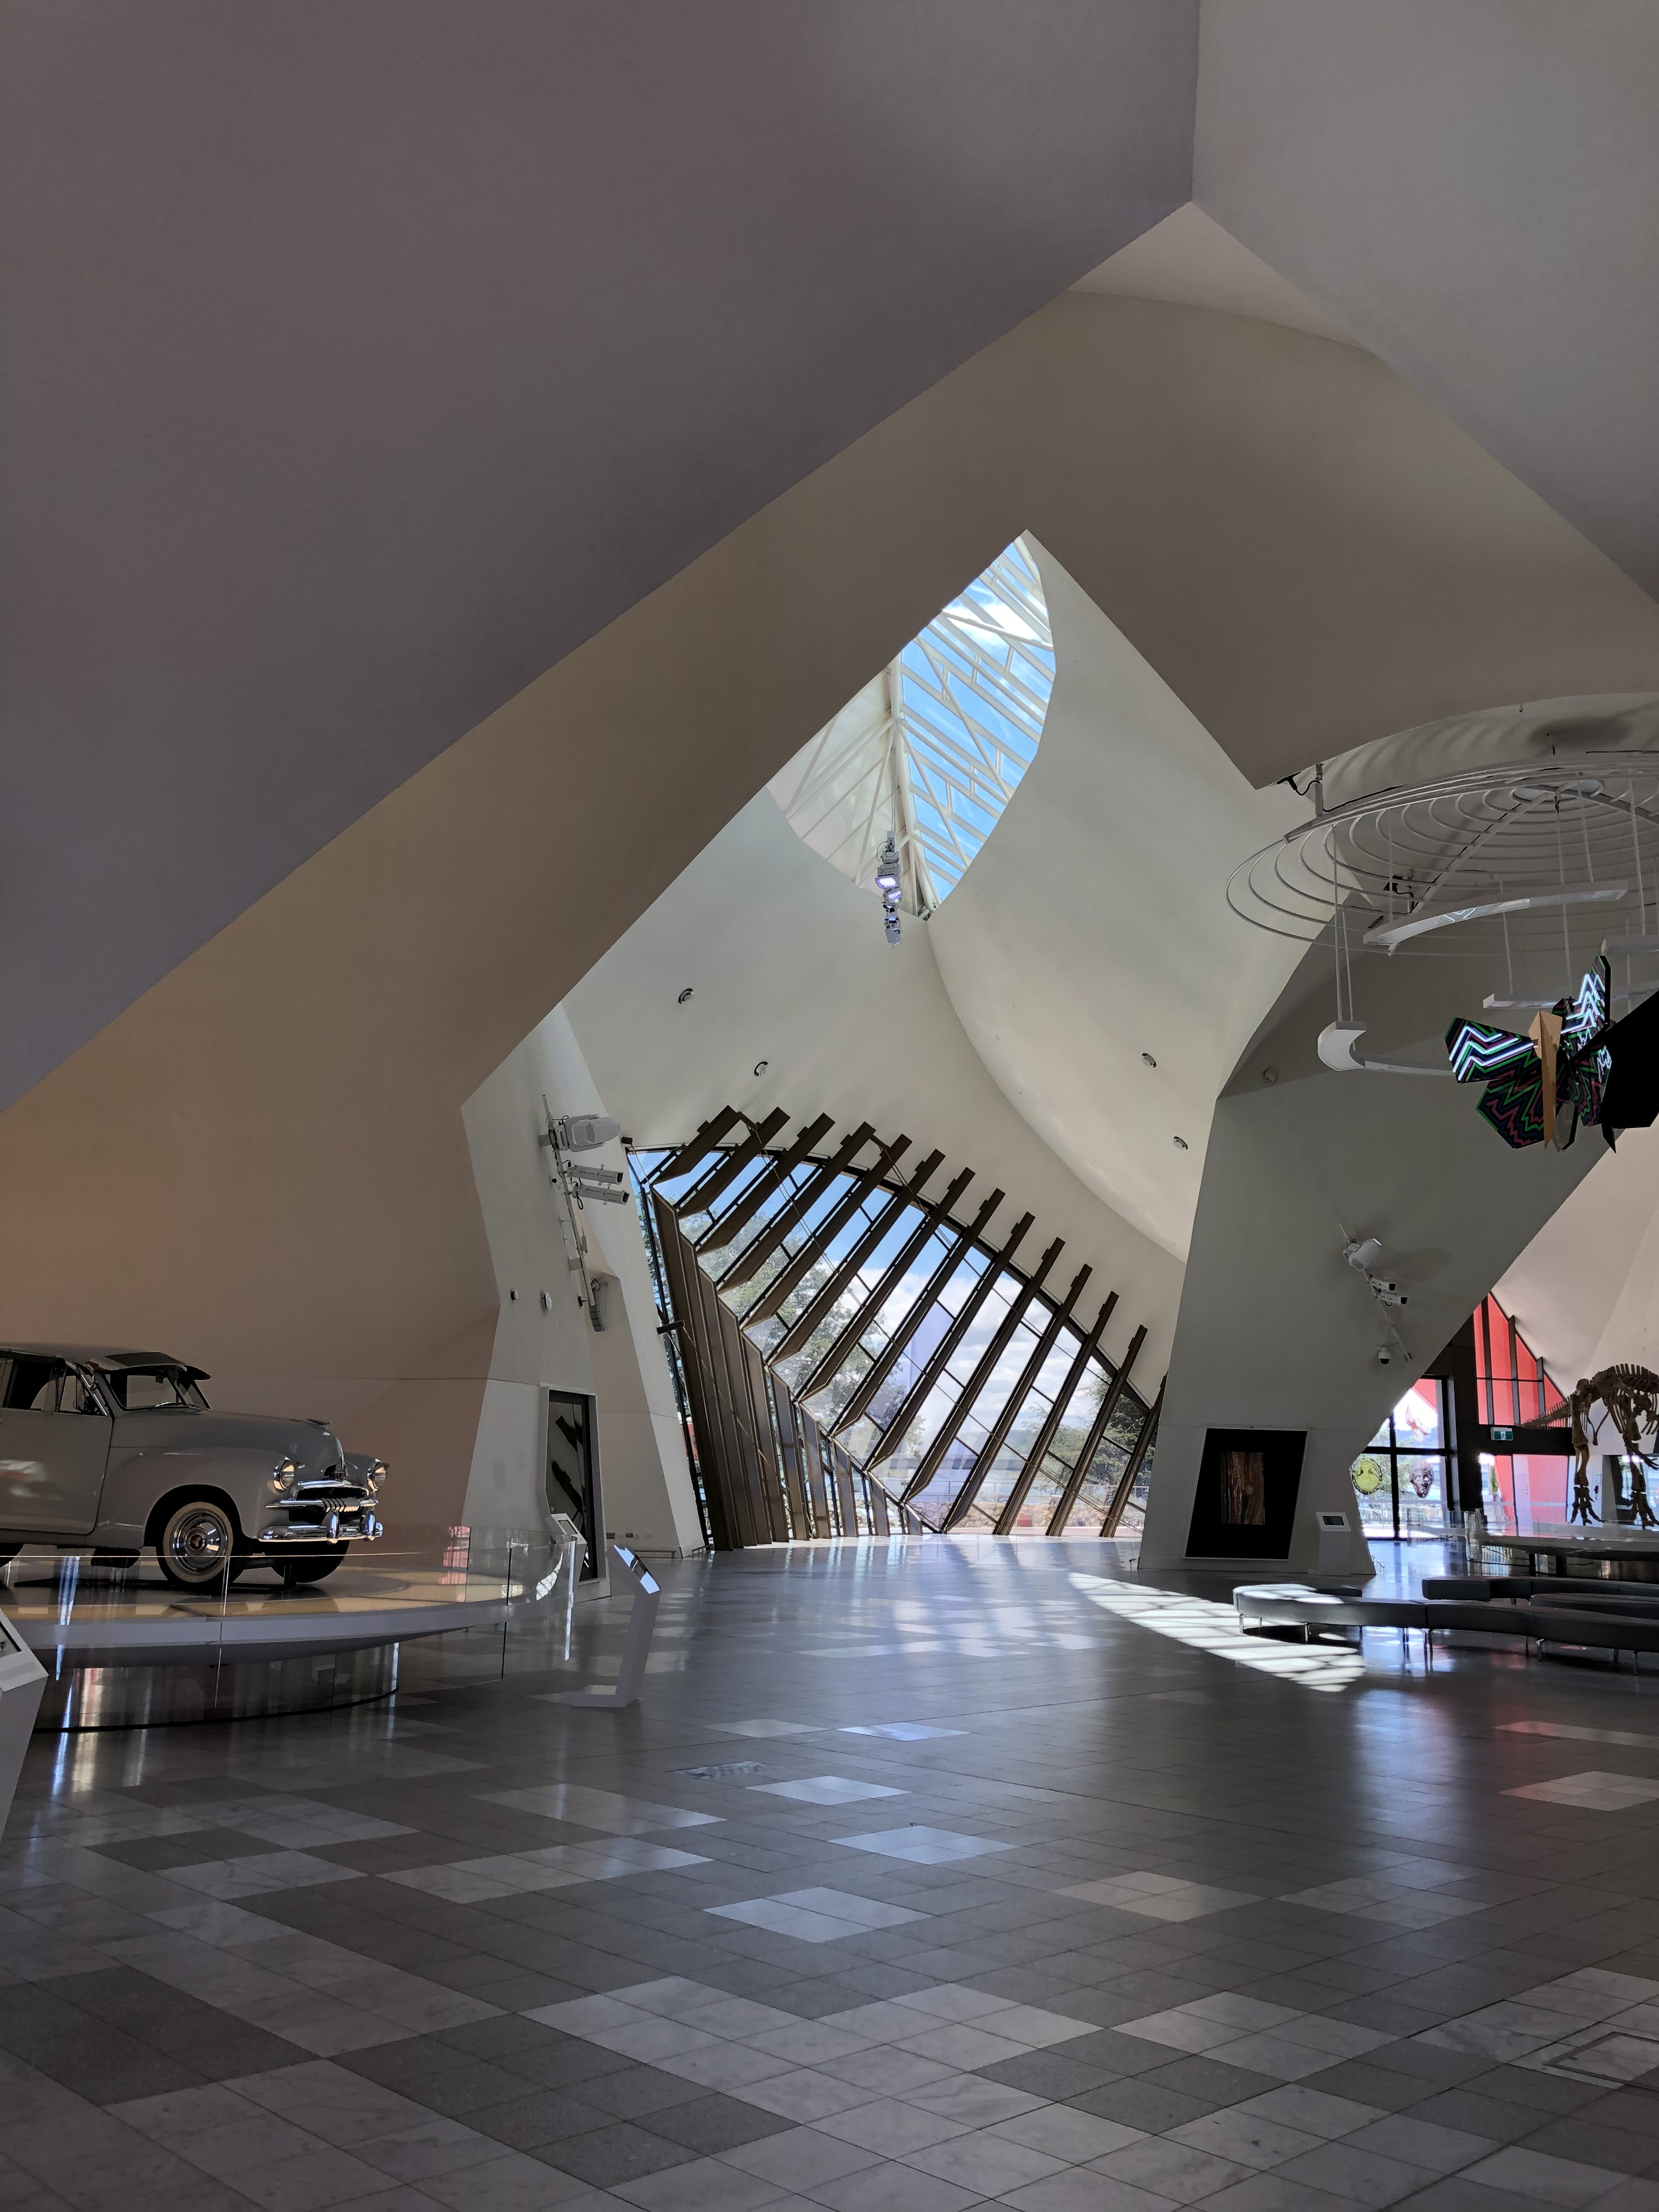 View of the open foyer of the National Museum of Australia depicting the inside of a knot